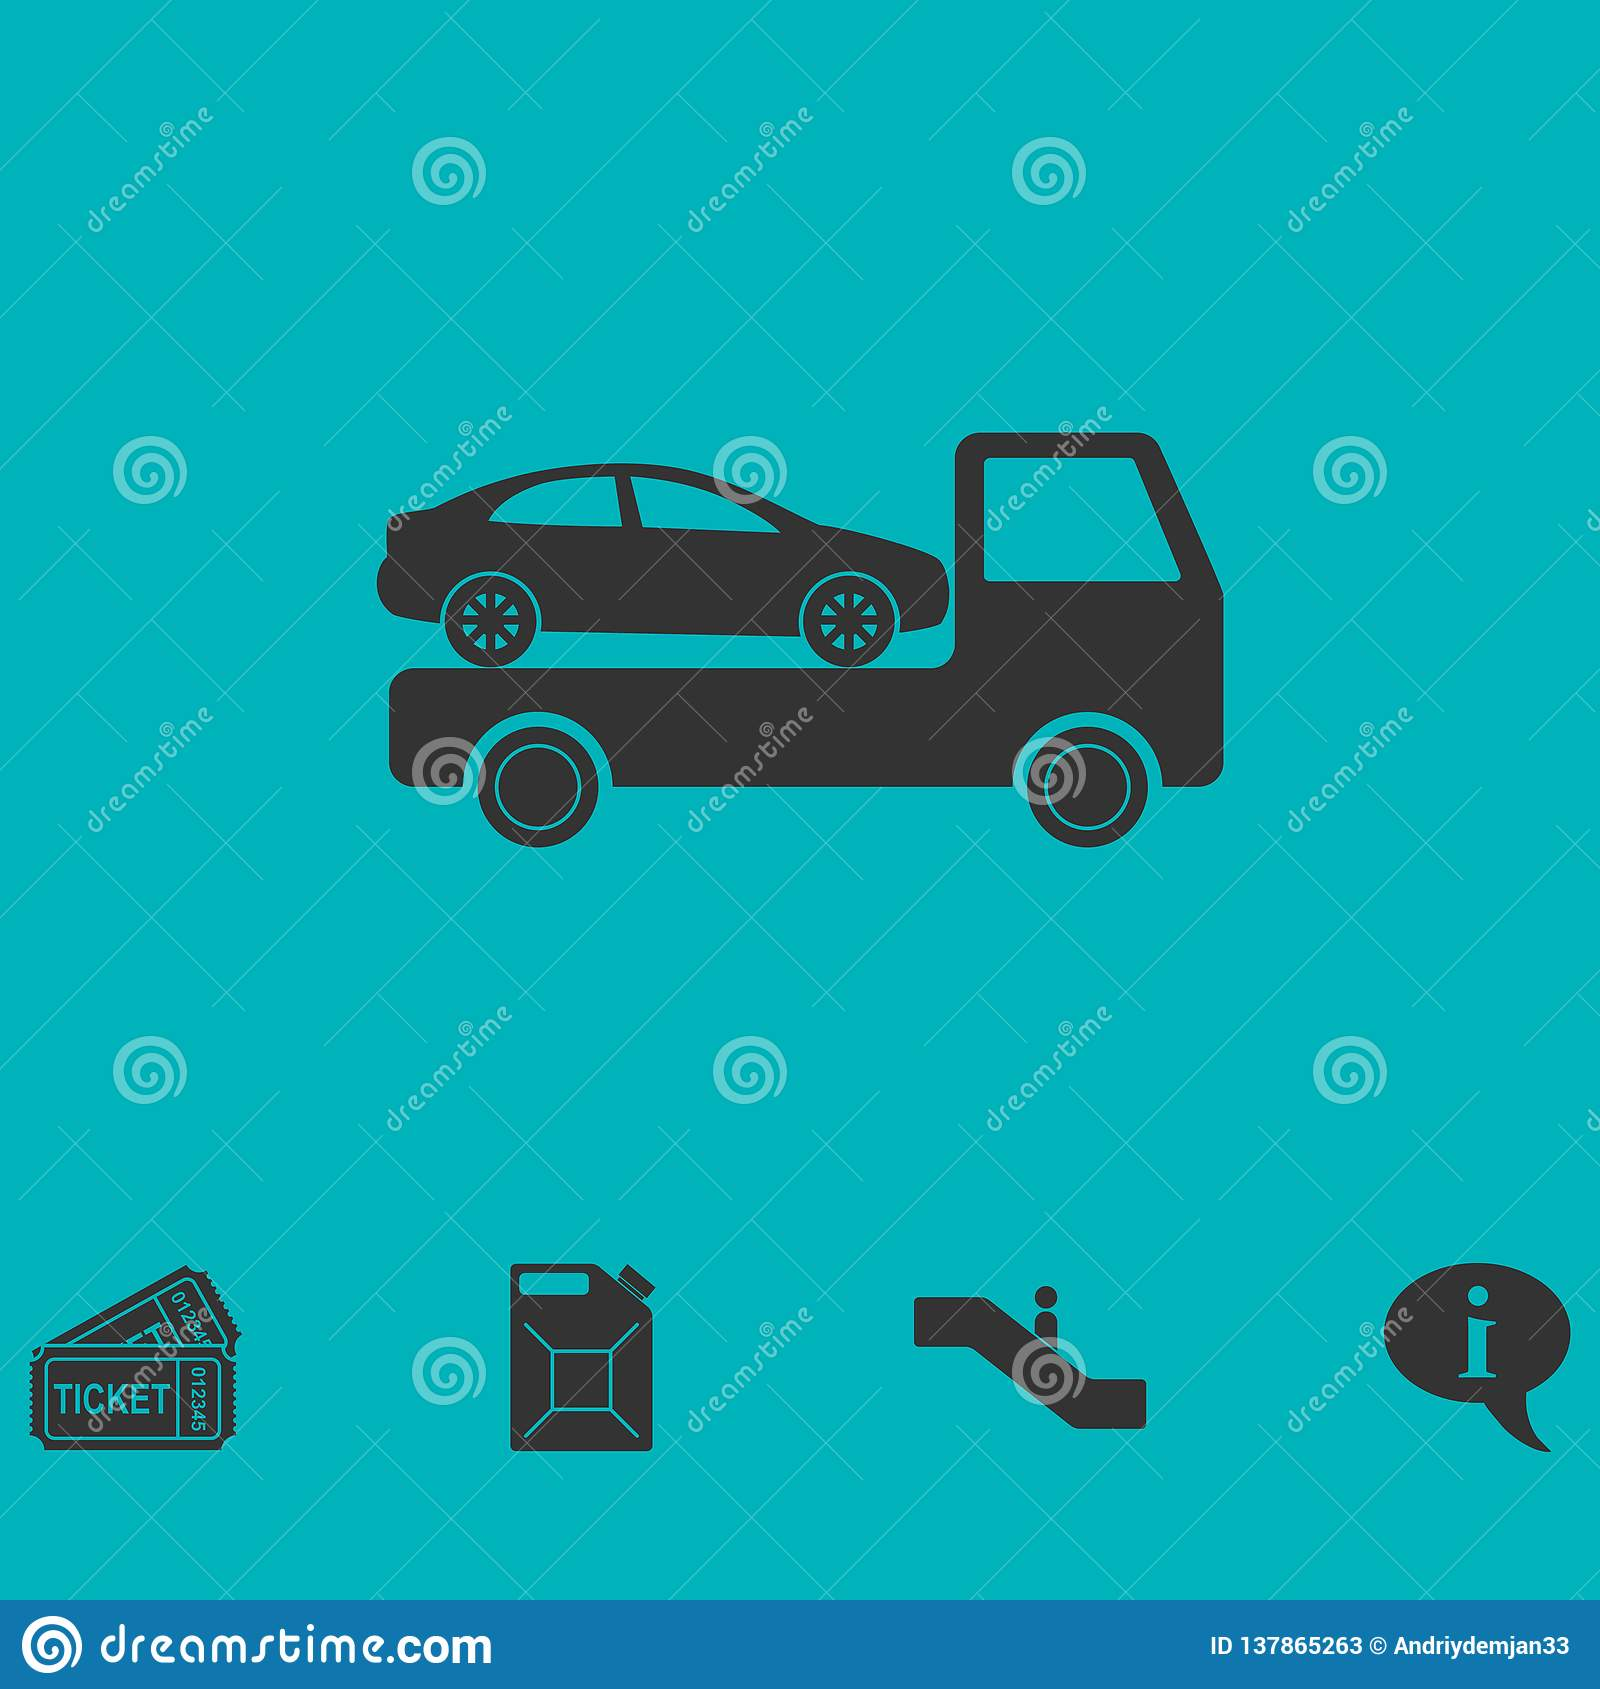 Tow car evacuation icon flat